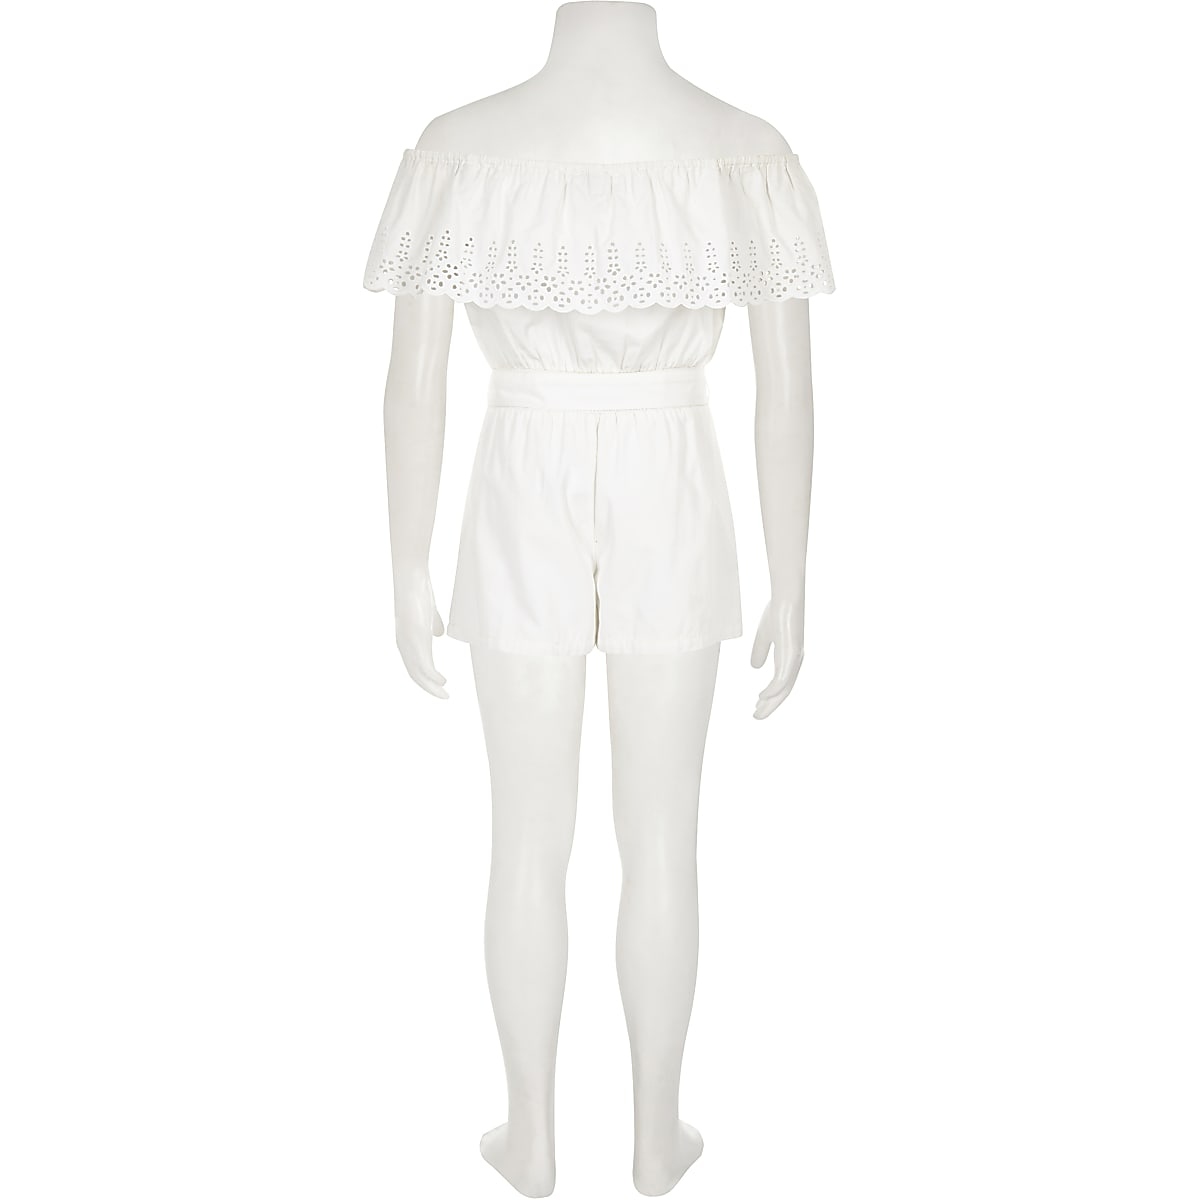 36c801436 Girls white broderie bardot playsuit - Playsuits - Playsuits ...